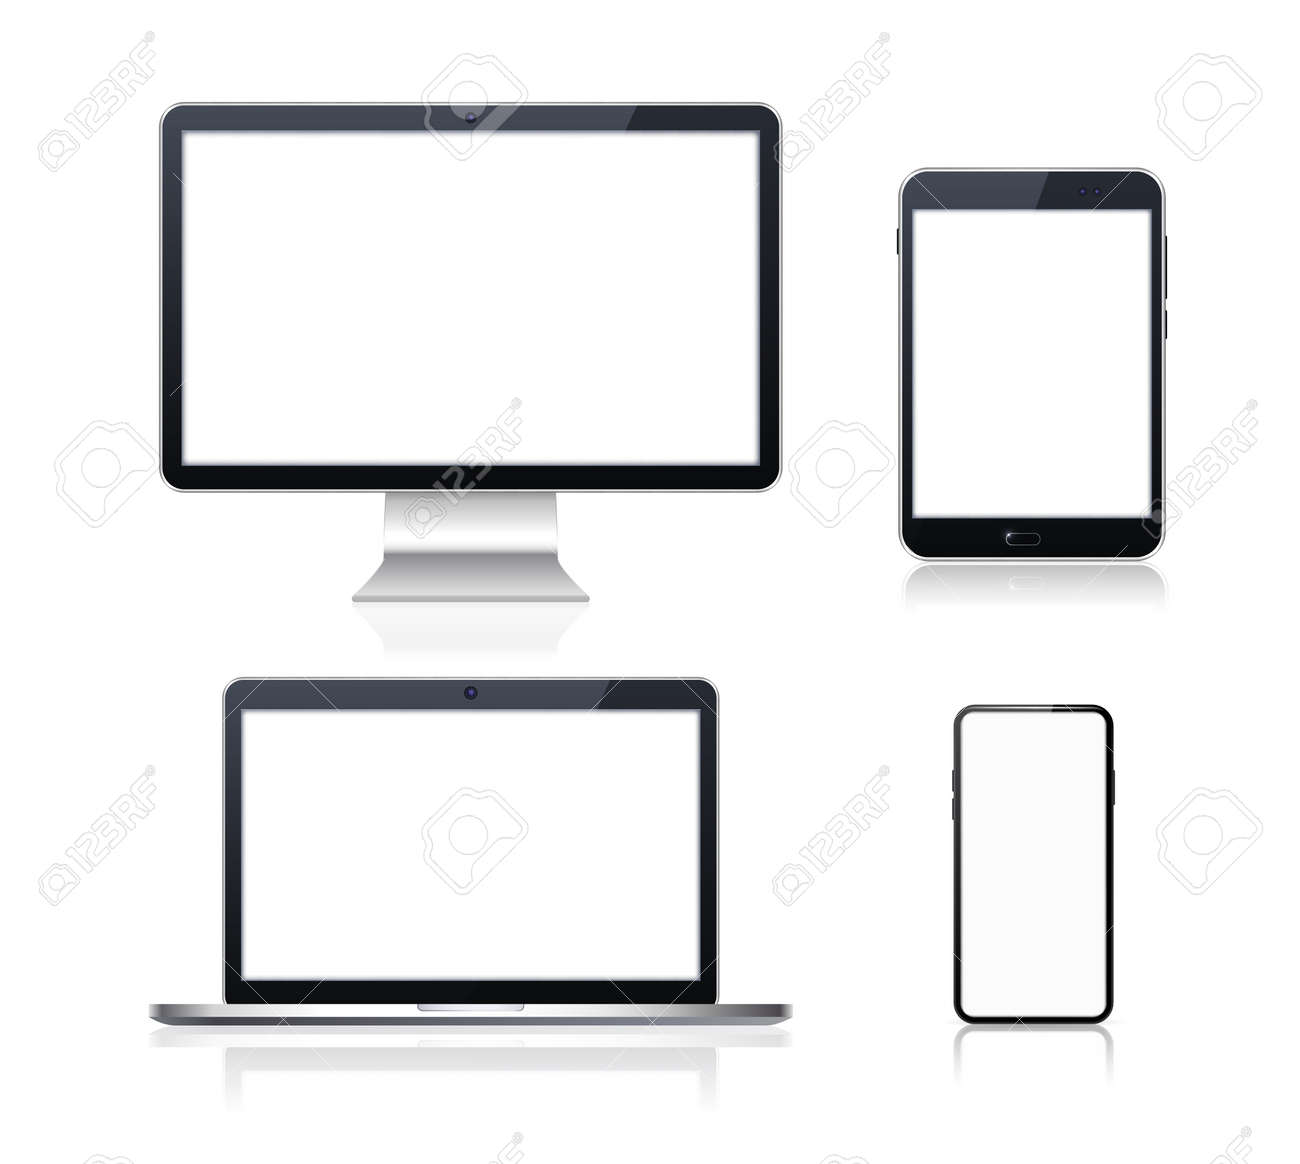 Set of Technological Devices with Blank Screen on Background . Isolated Vector Elements - 159245467